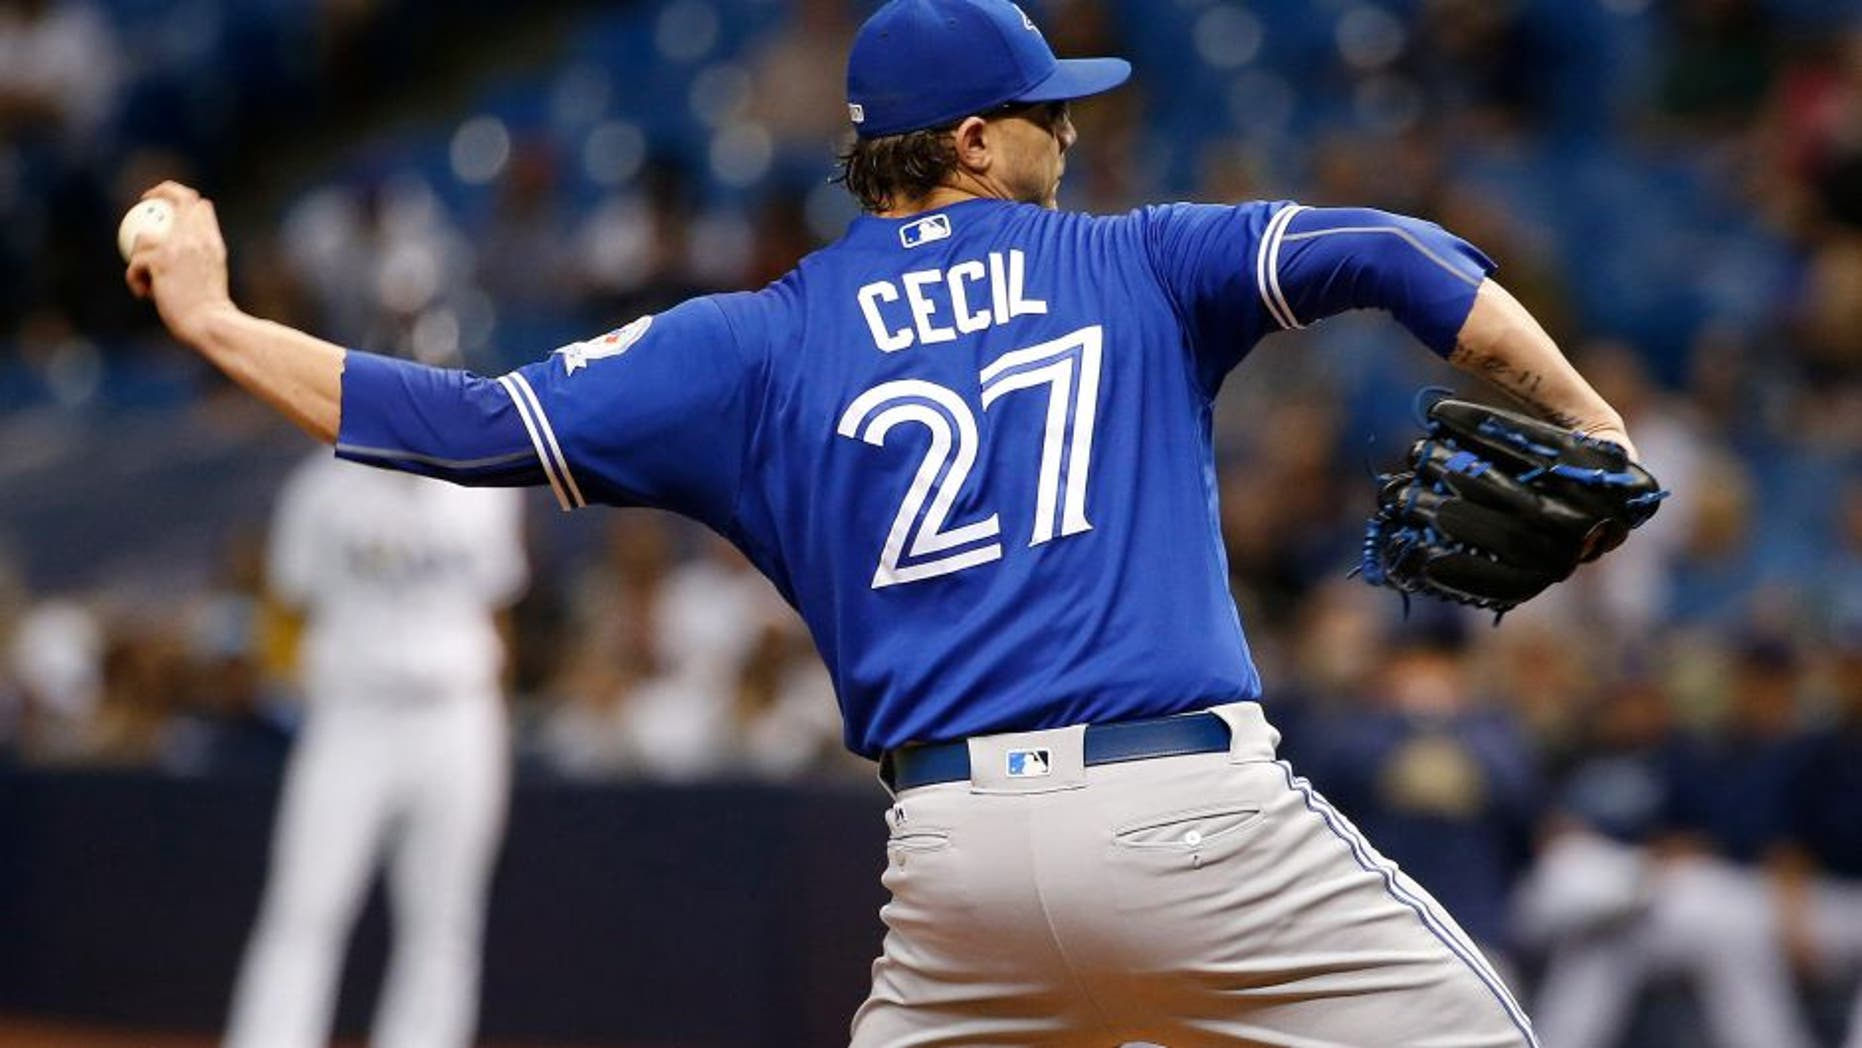 Sep 3, 2016; St. Petersburg, FL, USA; Toronto Blue Jays relief pitcher Brett Cecil (27) throws a pitch against the Tampa Bay Rays at Tropicana Field. Mandatory Credit: Kim Klement-USA TODAY Sports